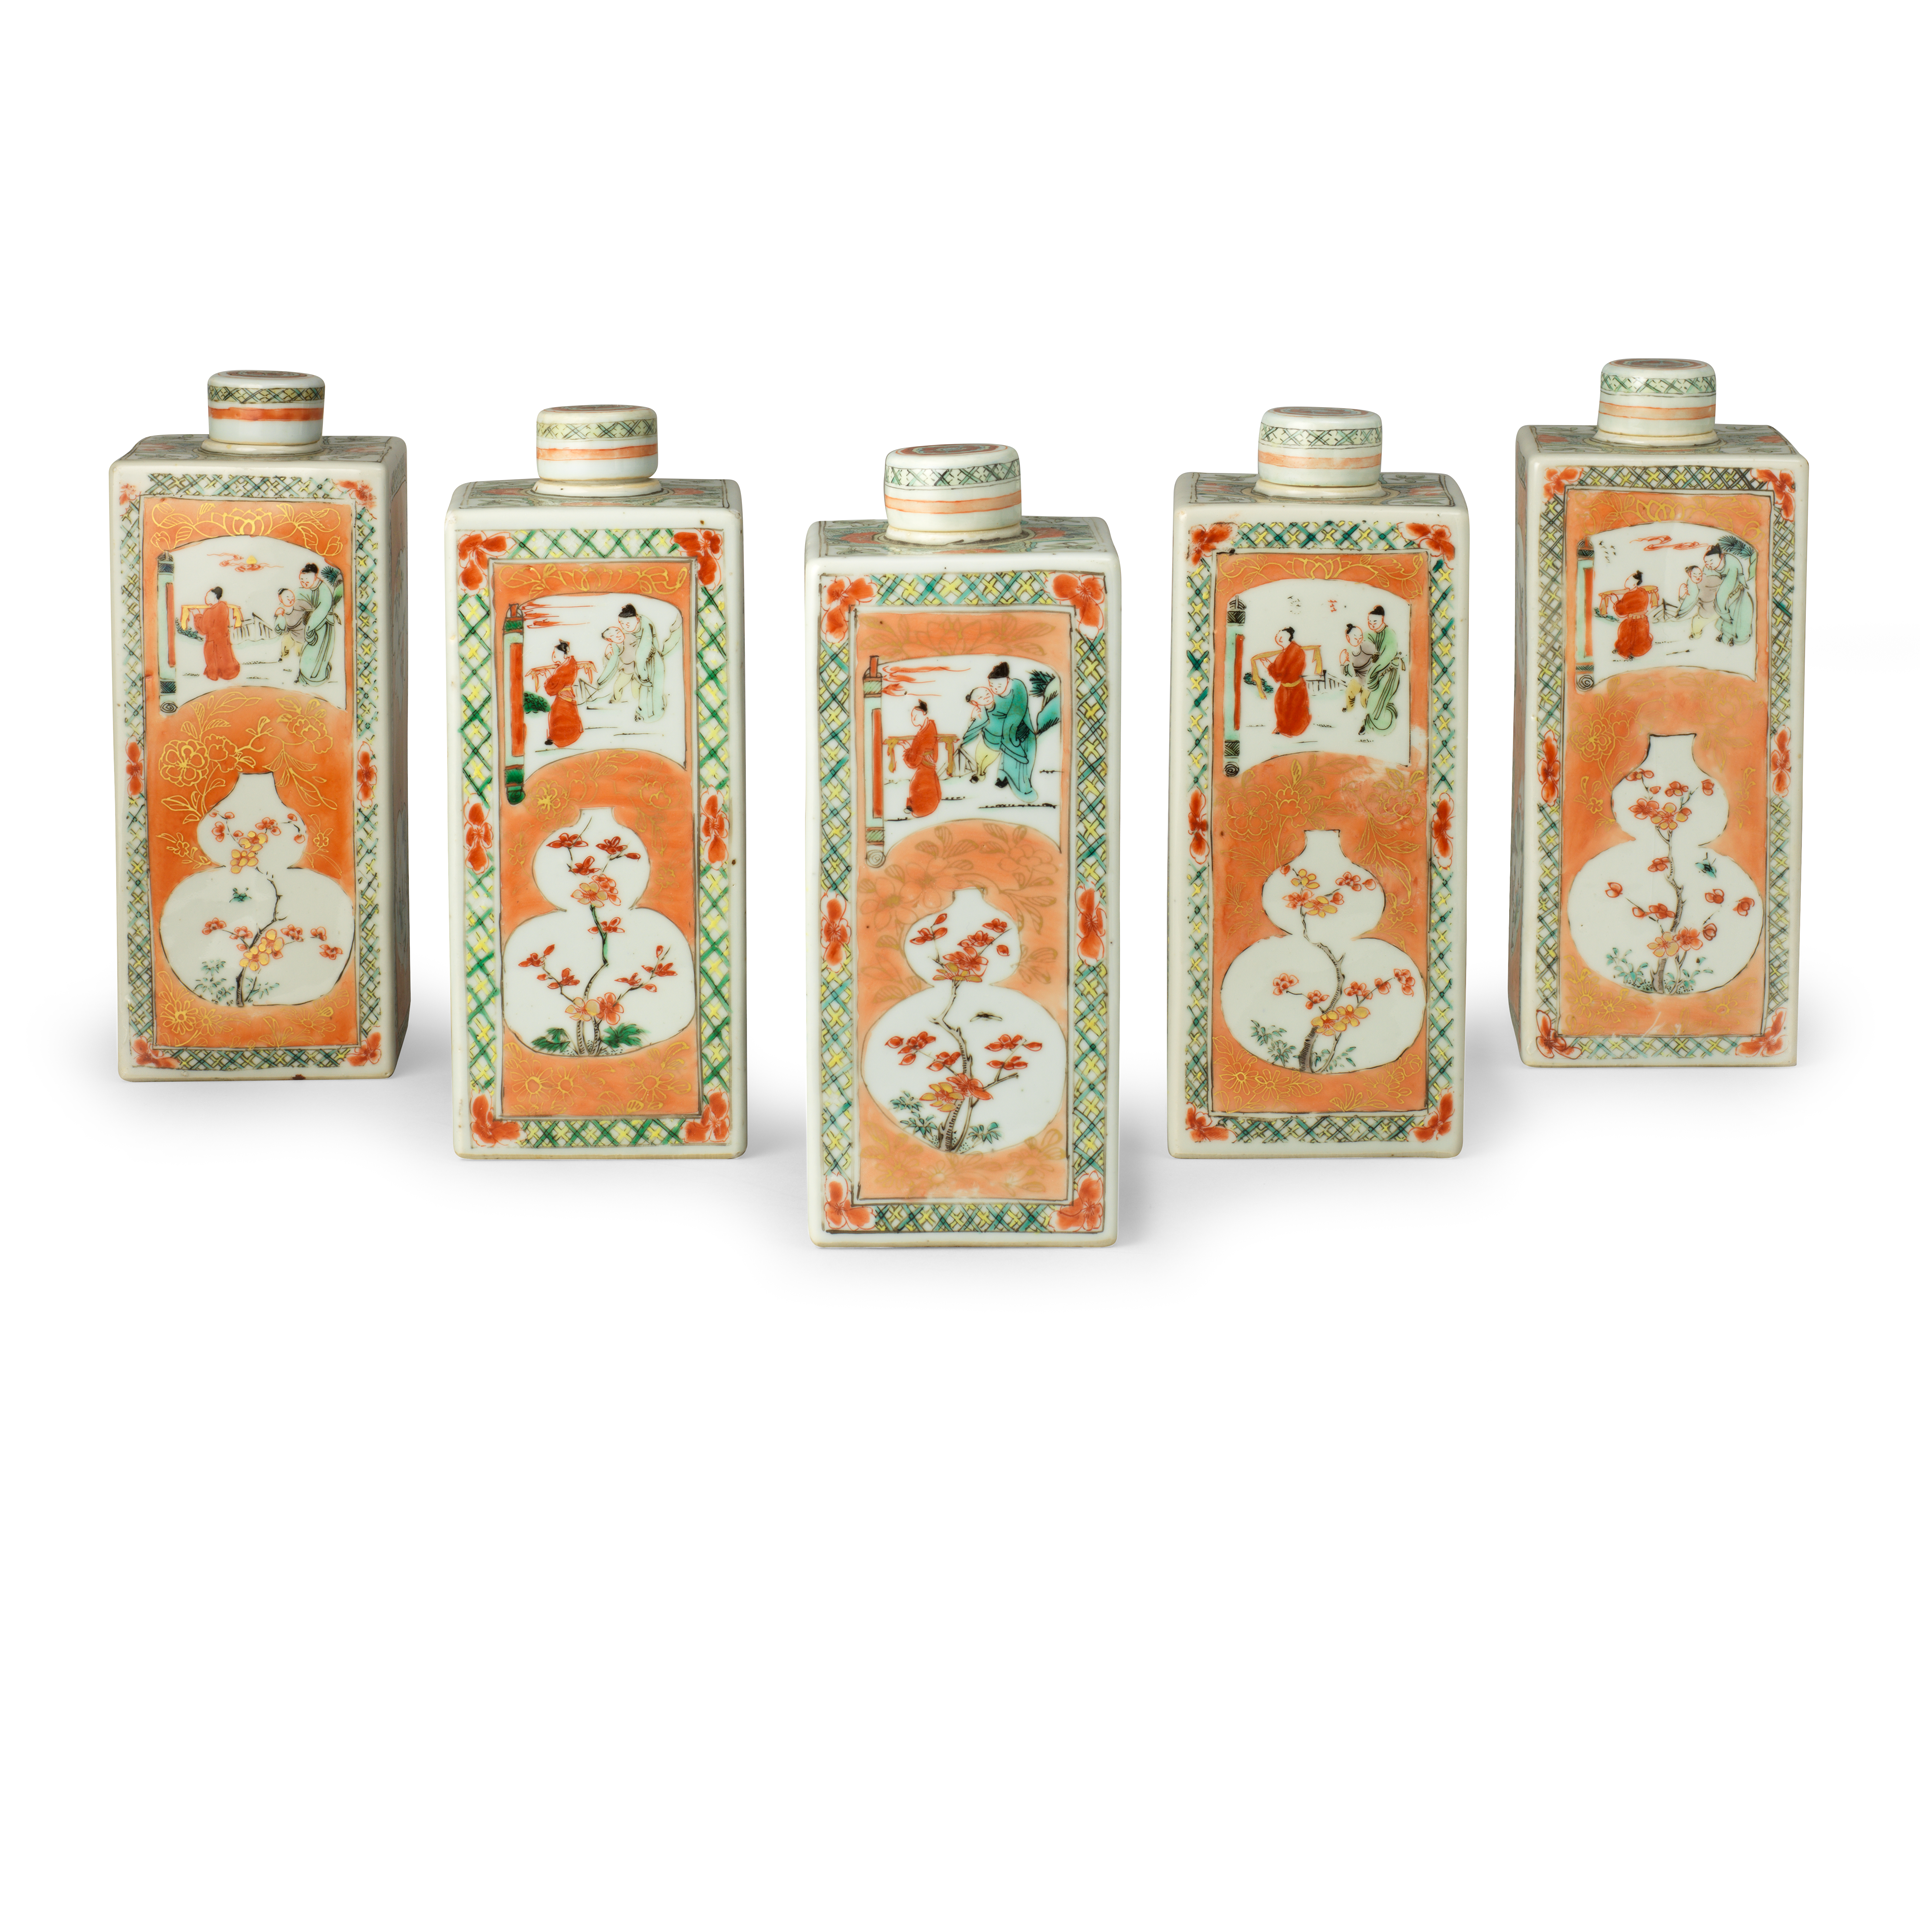 Five Bottles and Covers, Porcelain decorated in overglaze famille verte enamels and gold, Kangxi period (1662-1722)